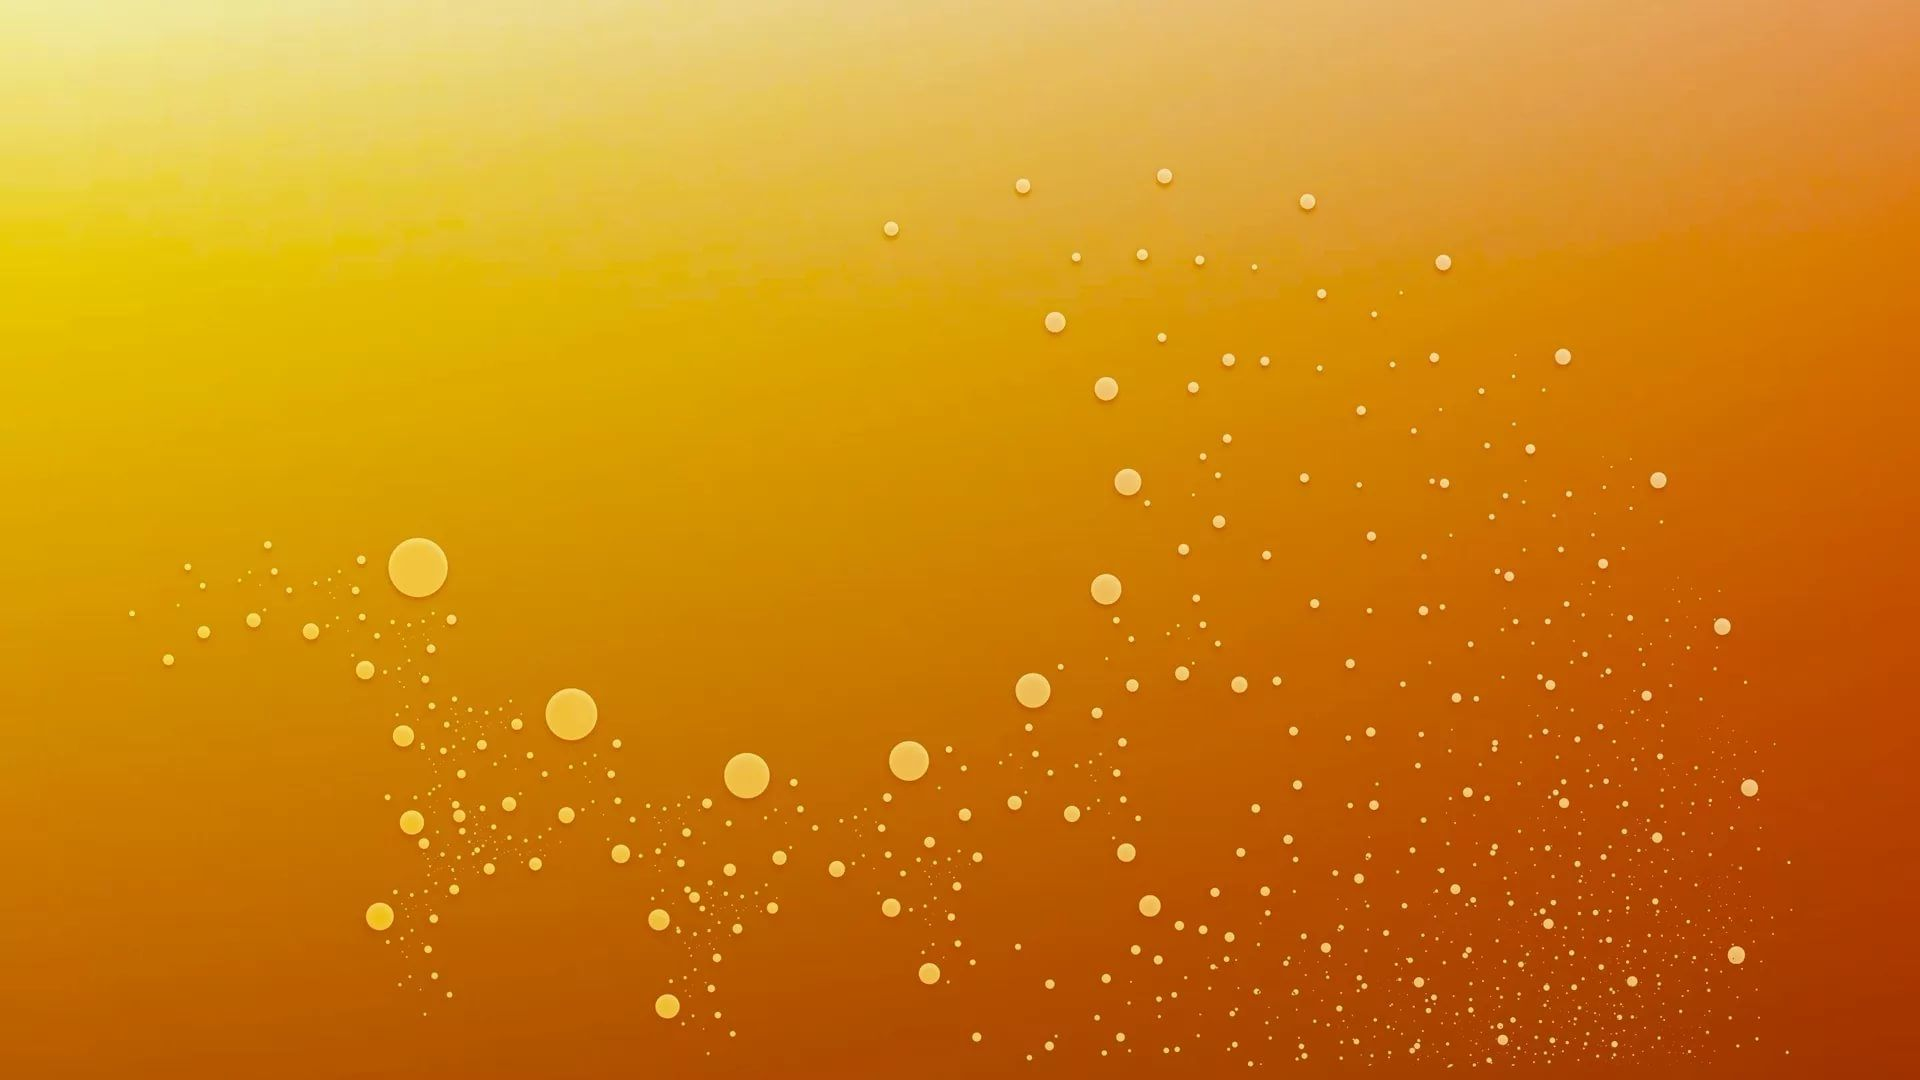 Yellow Abstract Background Wallpaper HD